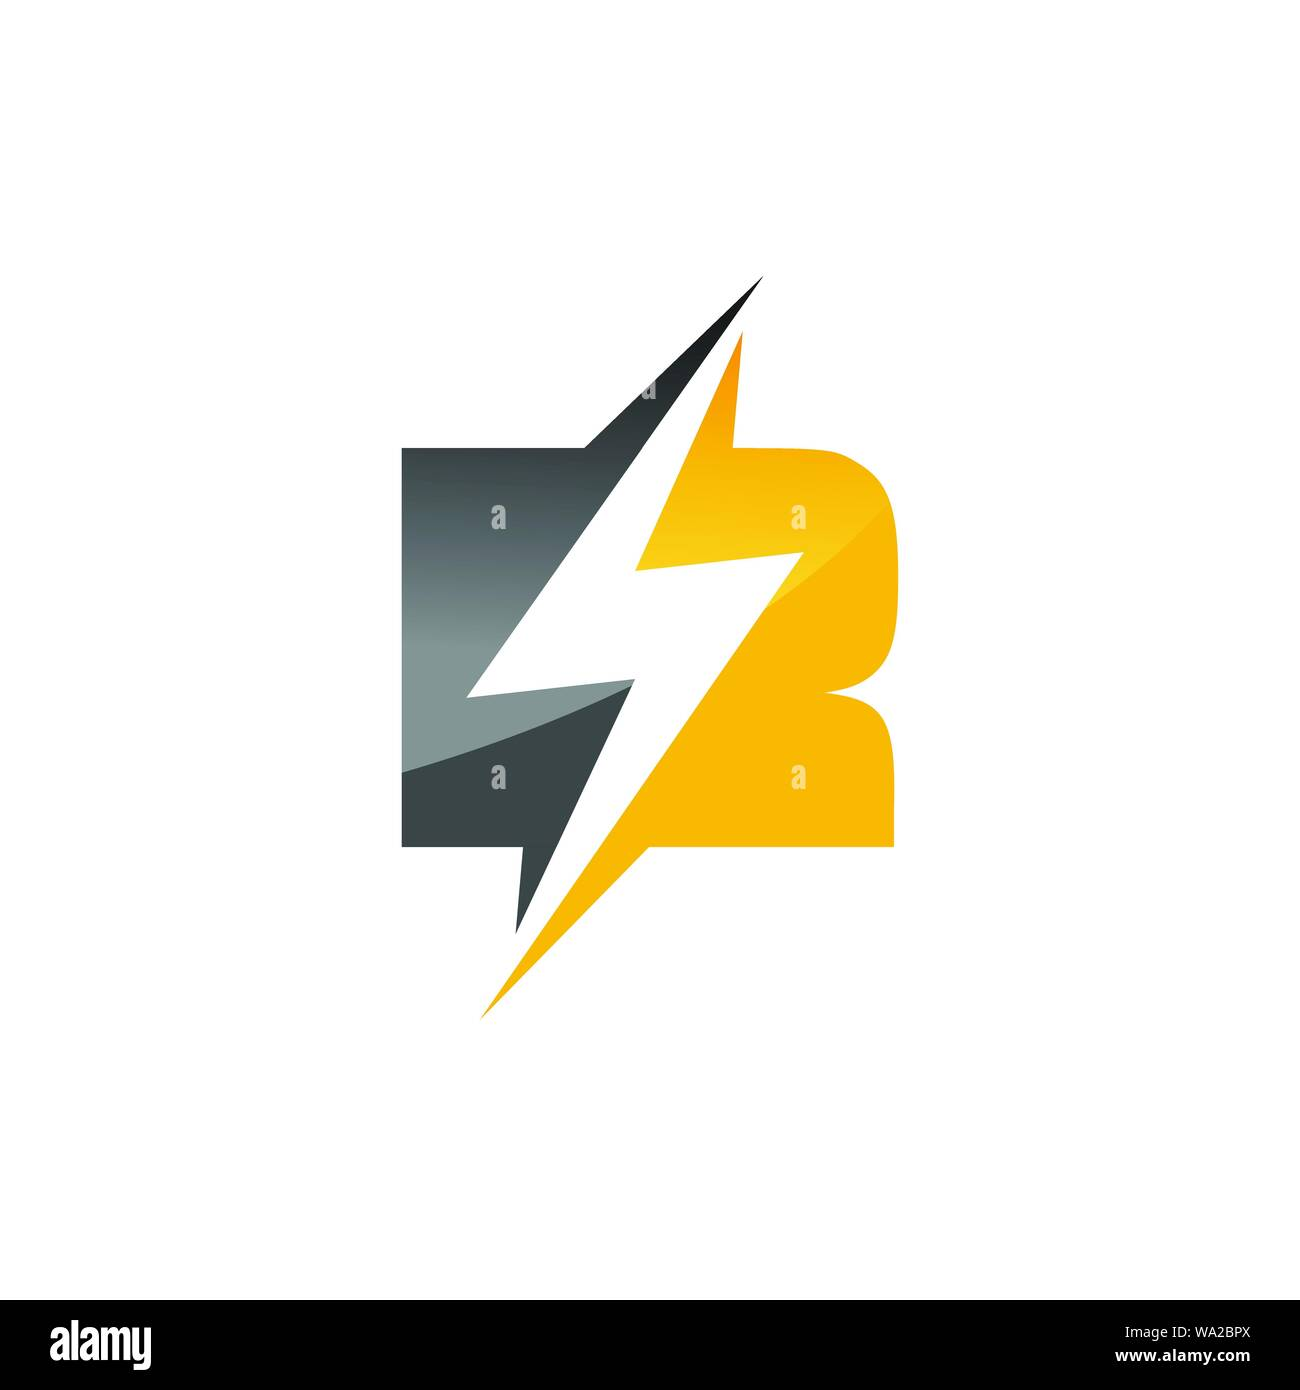 Initial Letter R Logo Template Lighting Bolt Design For Business And Company Identity Stock Vector Image Art Alamy